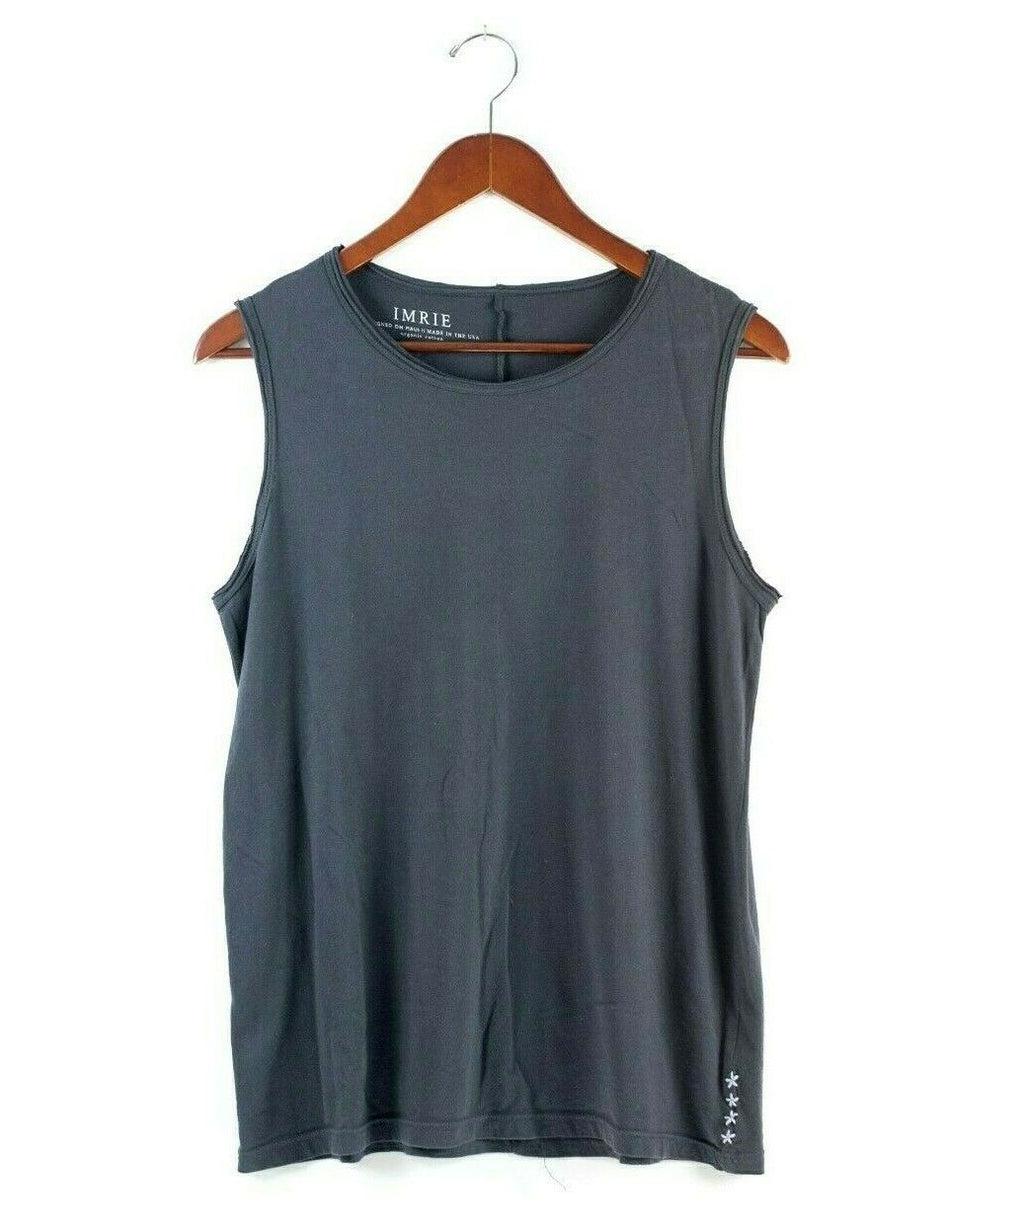 Anthropologie Imrie Womens Medium Blue Tank Top Organic Cotton Pullover Shirt